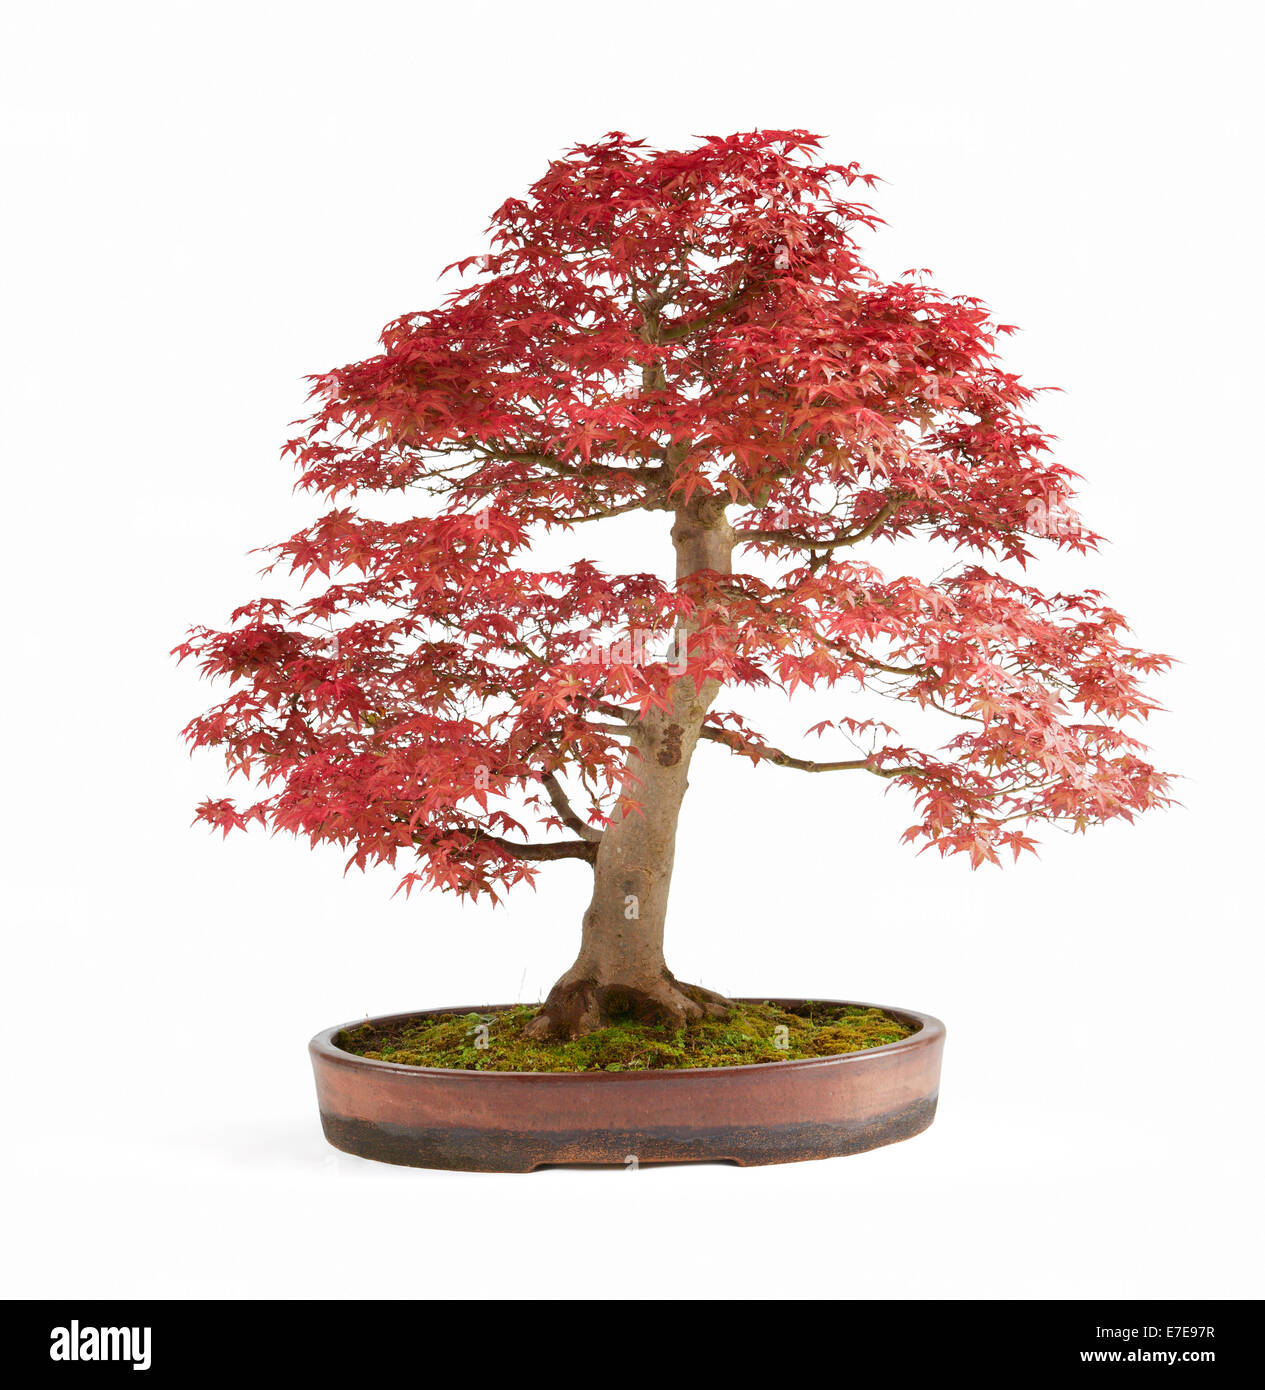 Bonsai Acer Palmatum Deshojo Japanese Red Maple Stock Photo